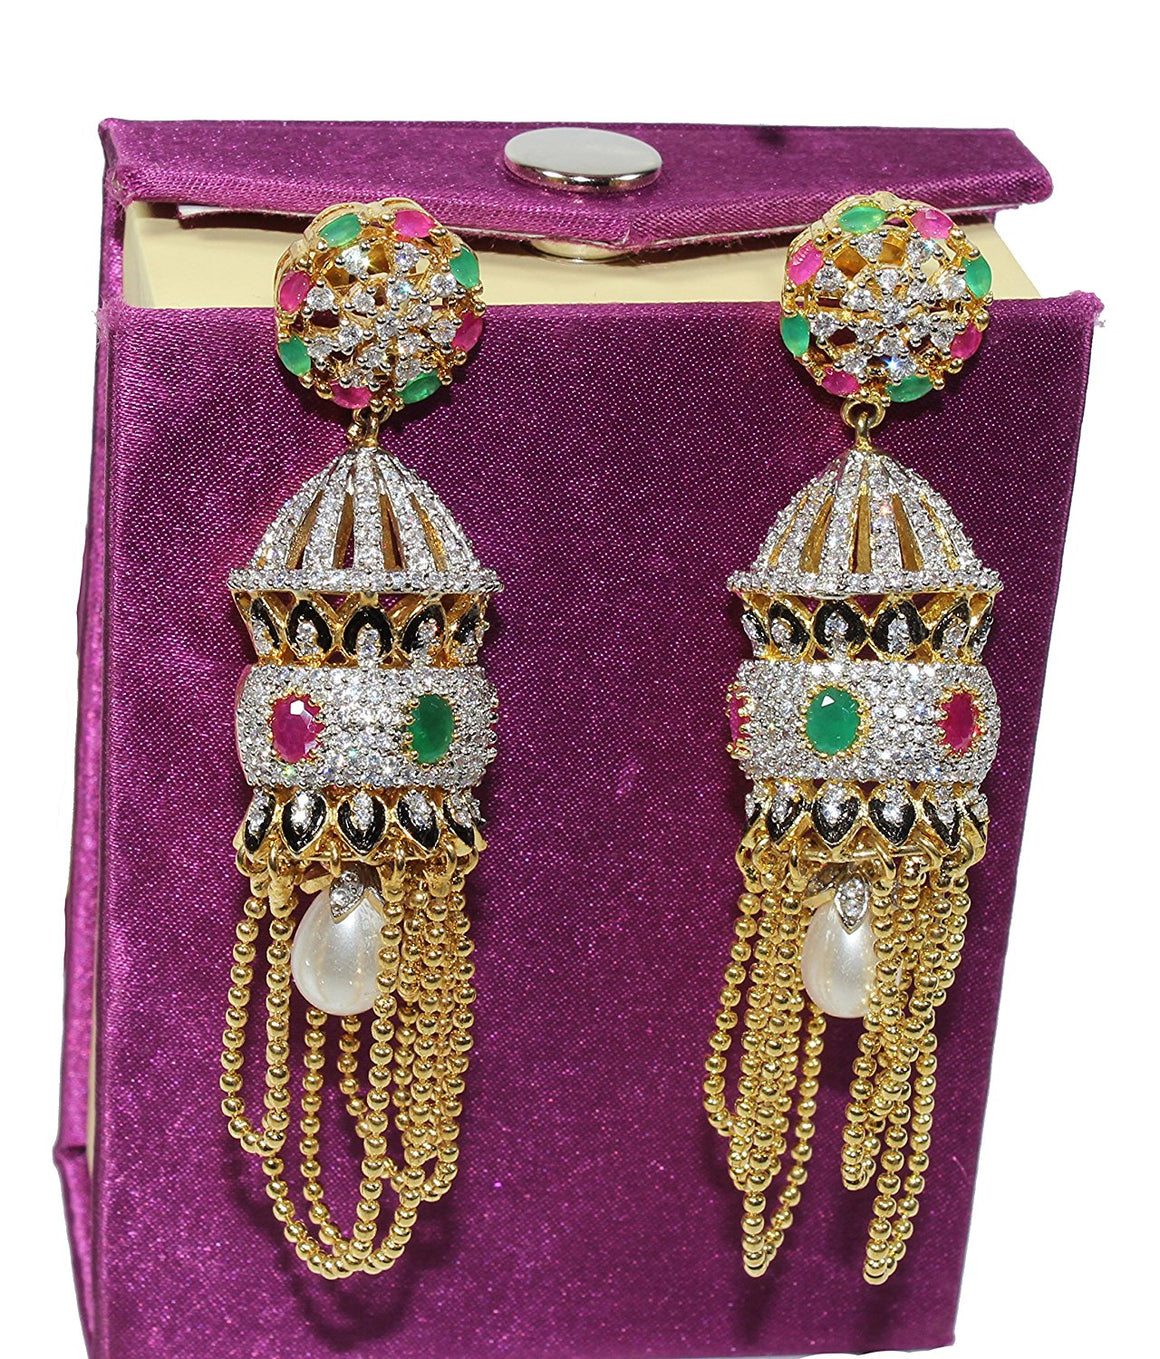 Alekip Cz Jhumka with 24 Karat Gold plated Chains dangling at the Base, Red & Emerald Semi precious Stones studded For women